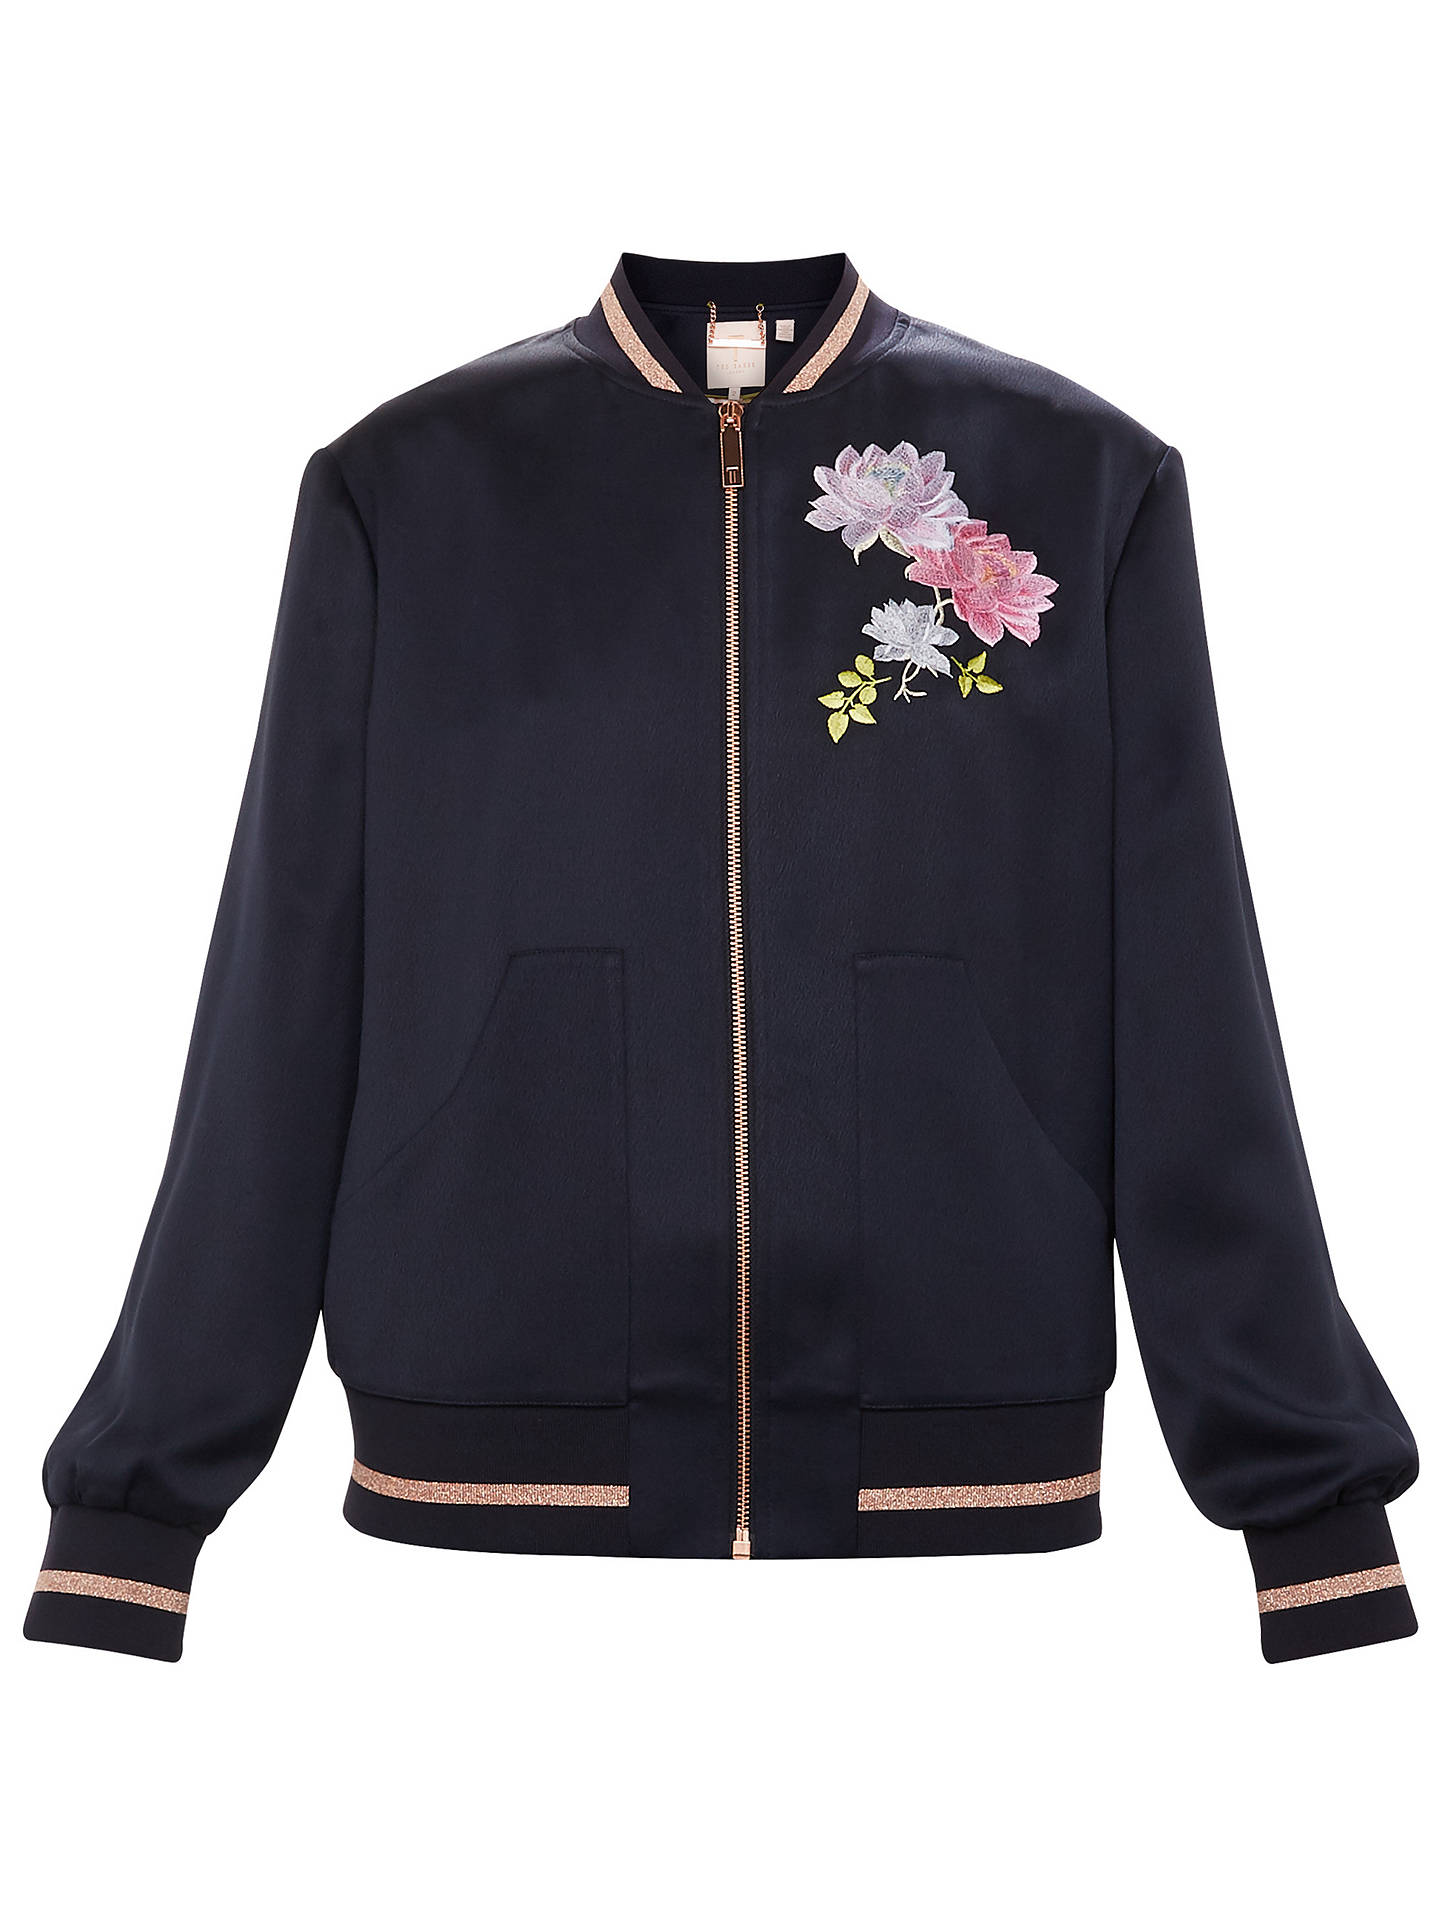 Buy Ted Baker Ruuthe Floral Embroidered Bomber Jacket, Blue, 5 Online at johnlewis.com